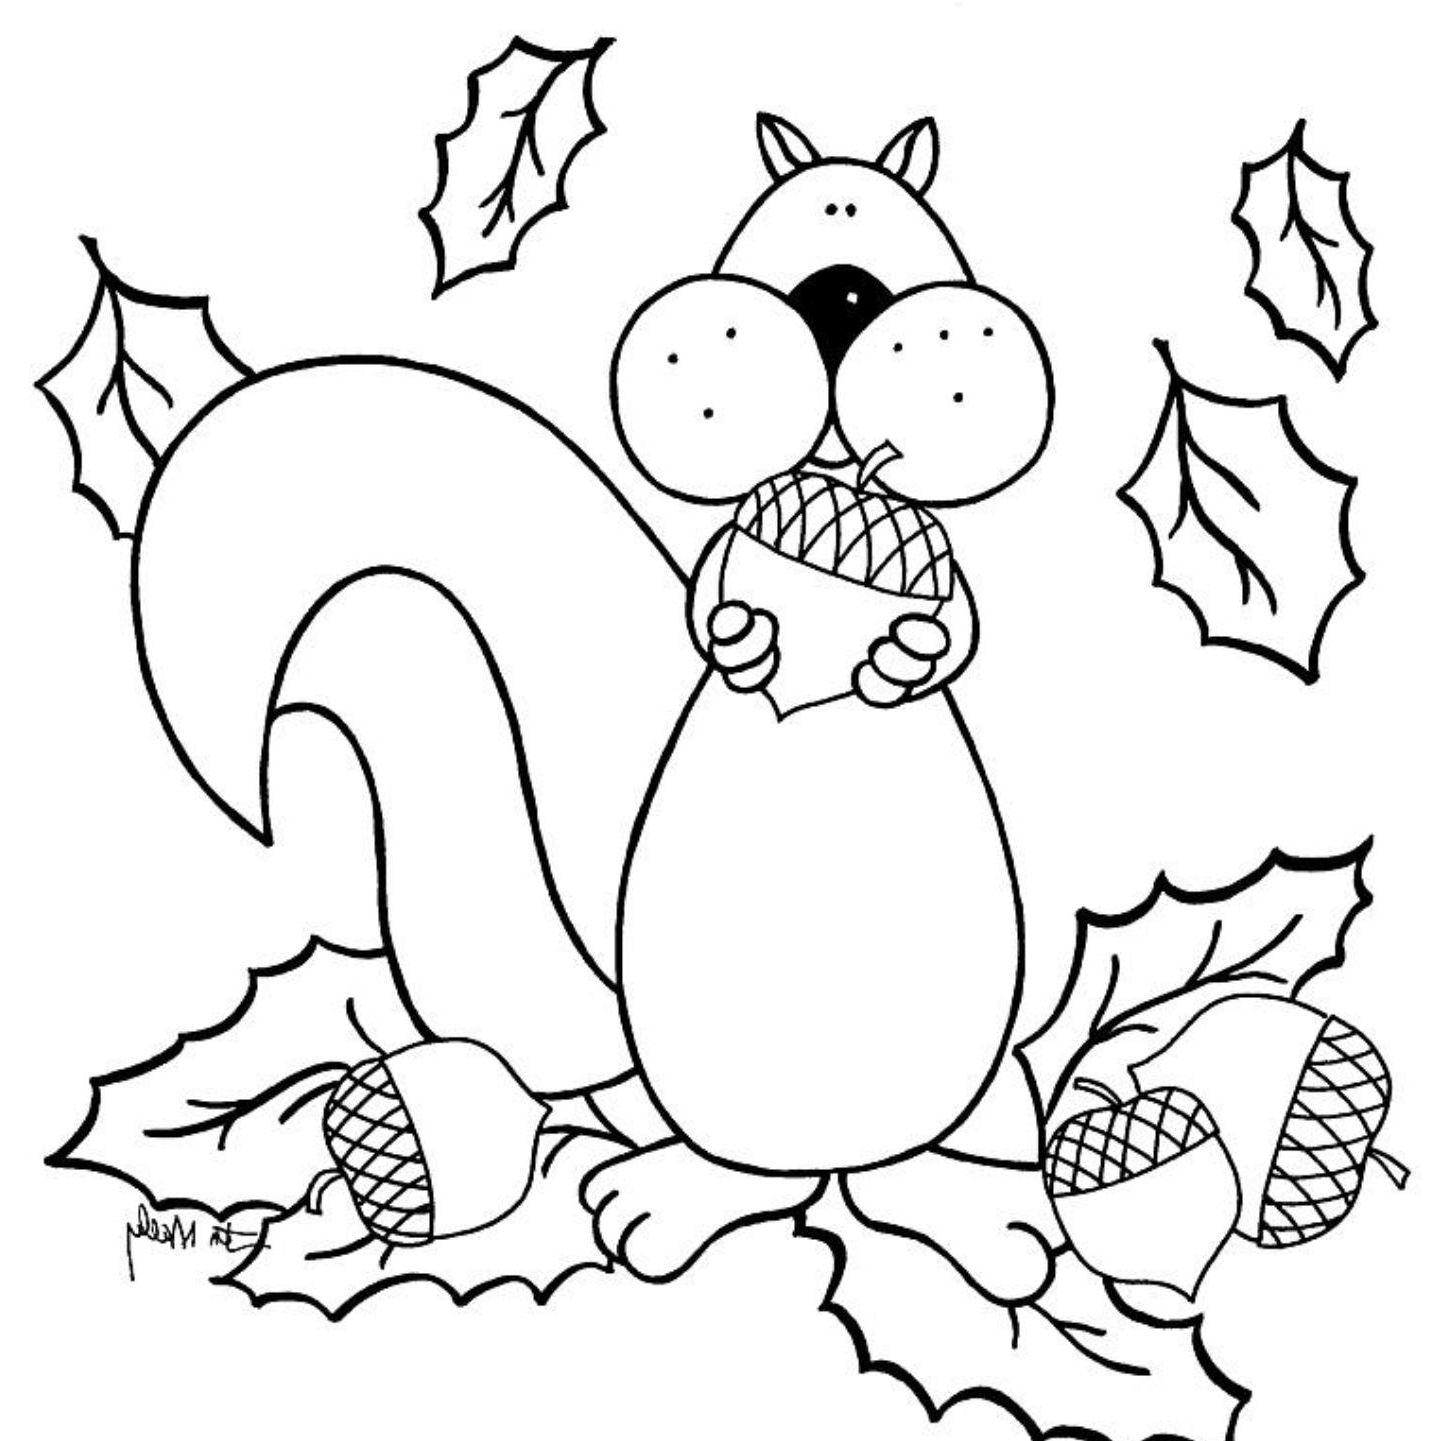 Preschool Fall Coloring Pages Squirrel coloring page